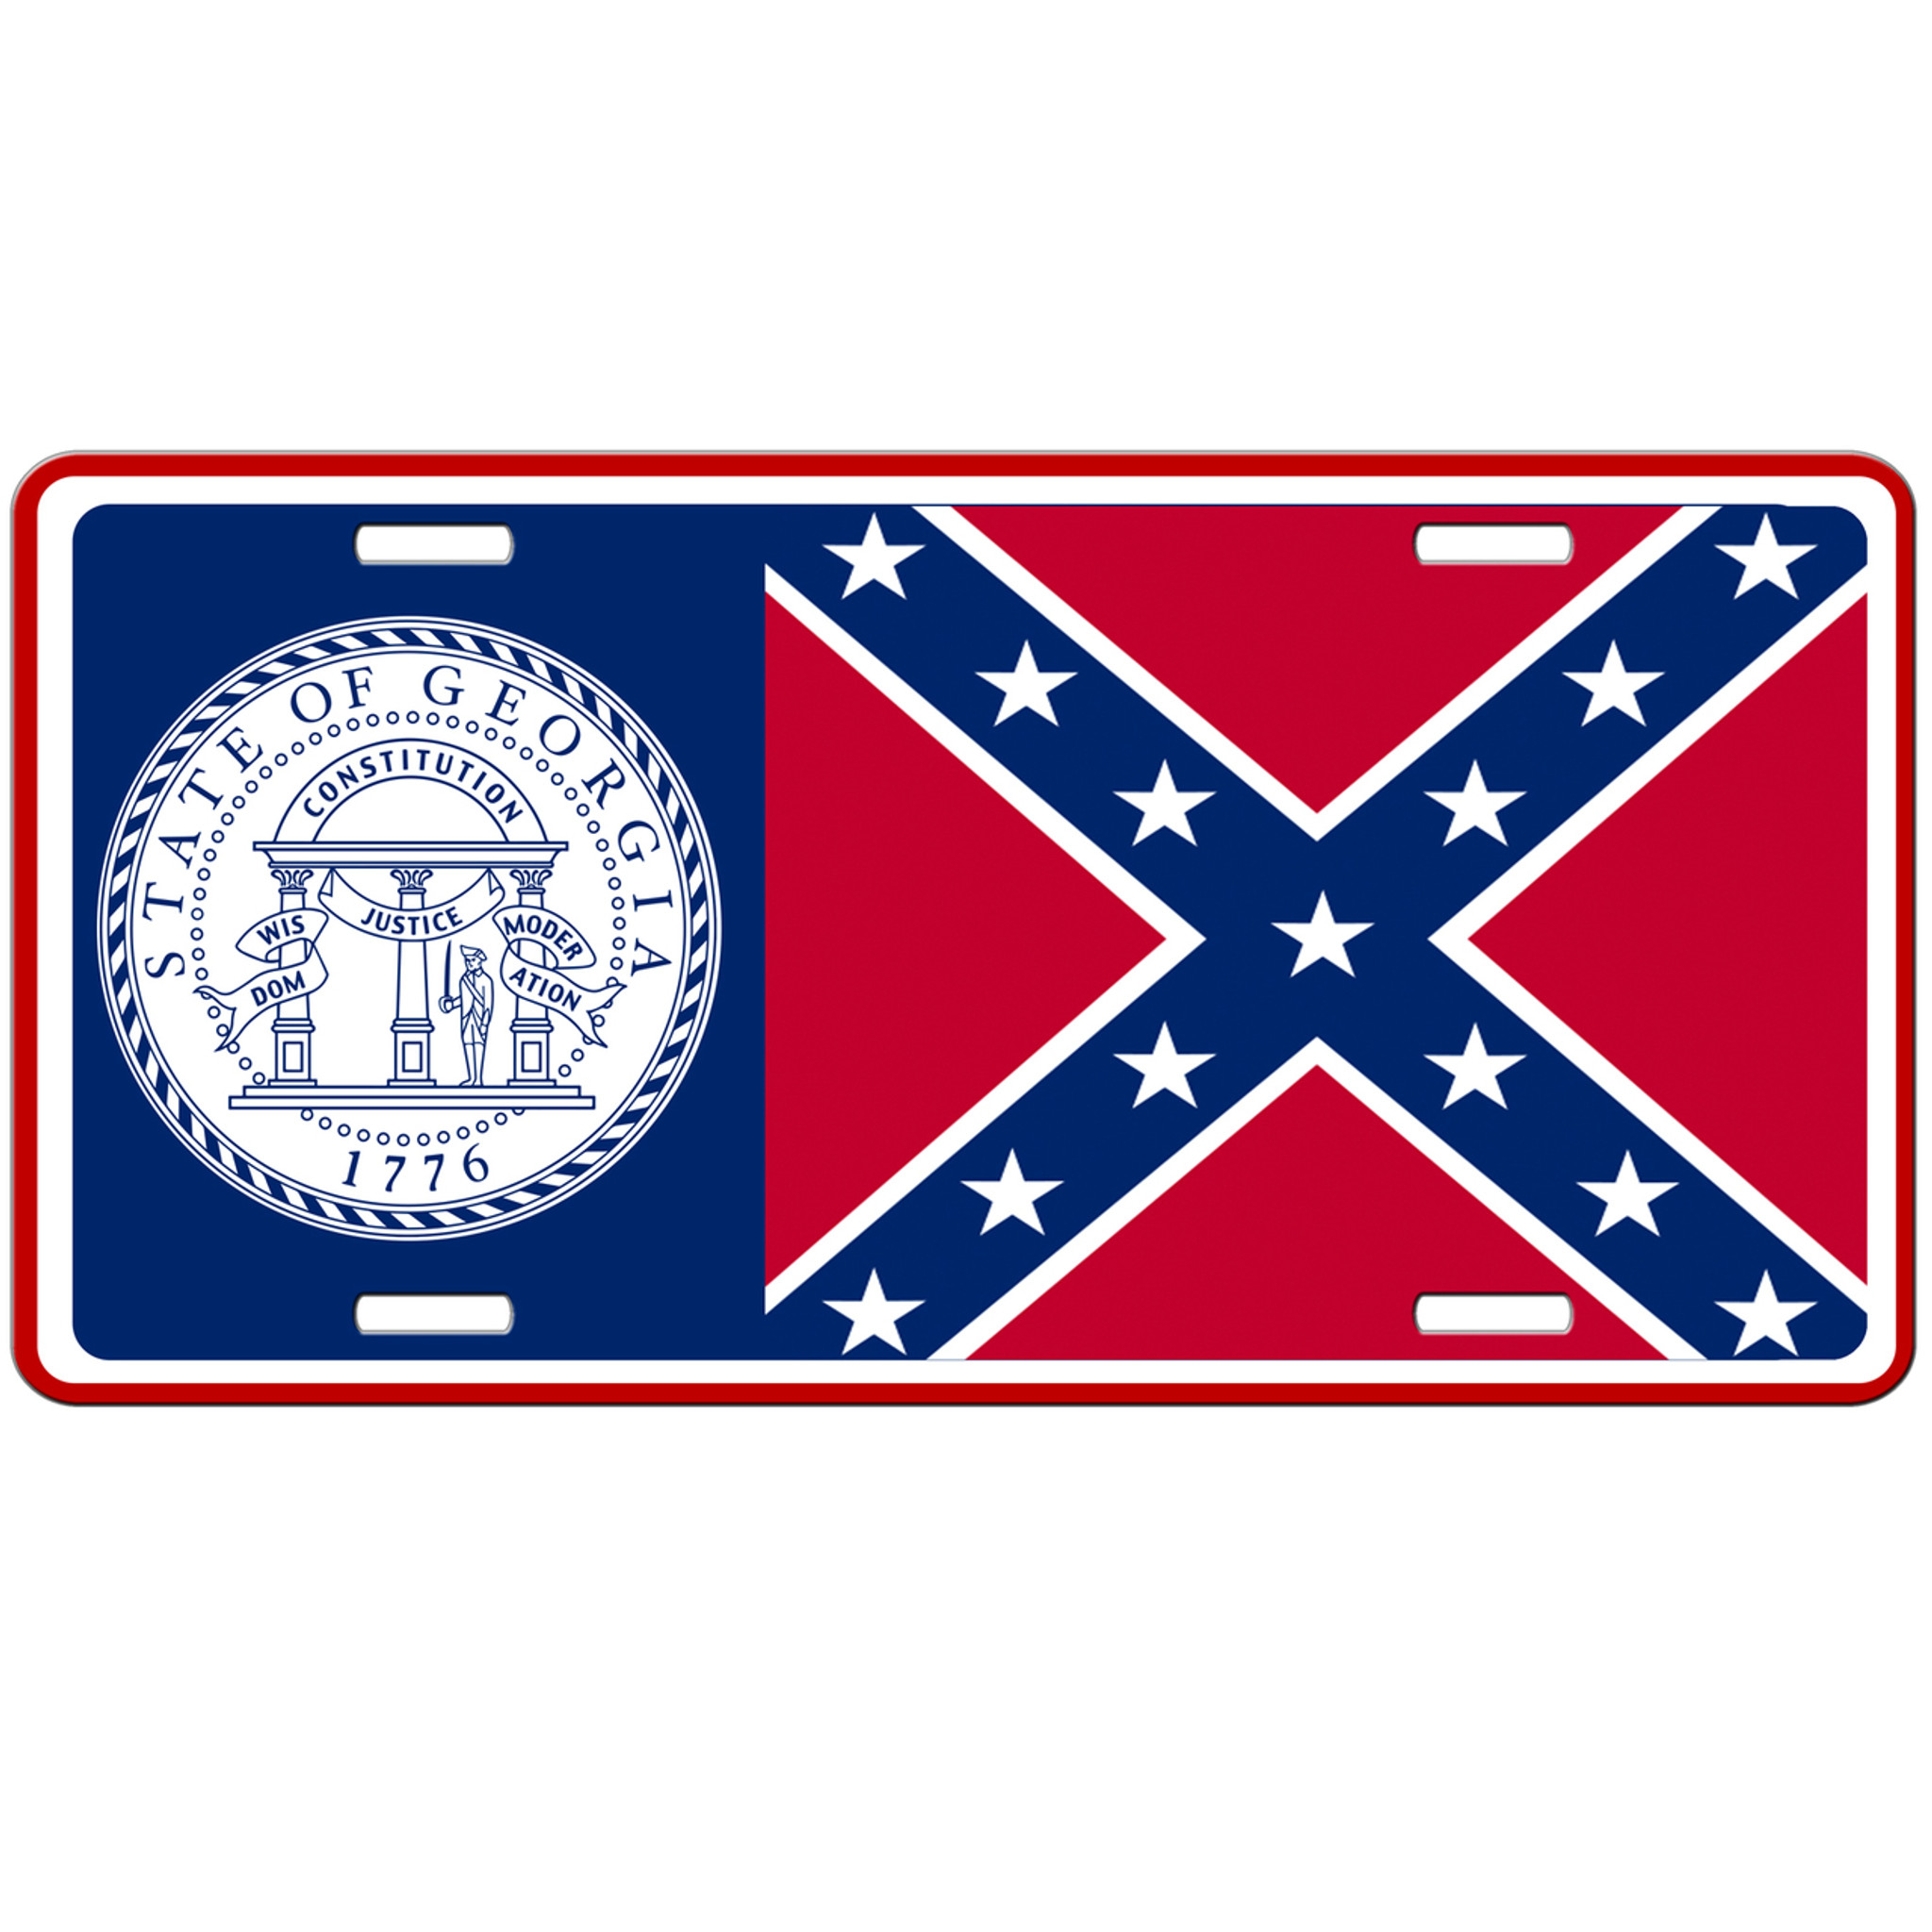 Customized License Plates >> Georgia State Flag Confederate Car Tag - License Plate Rebel Flag - SimplyCustomized